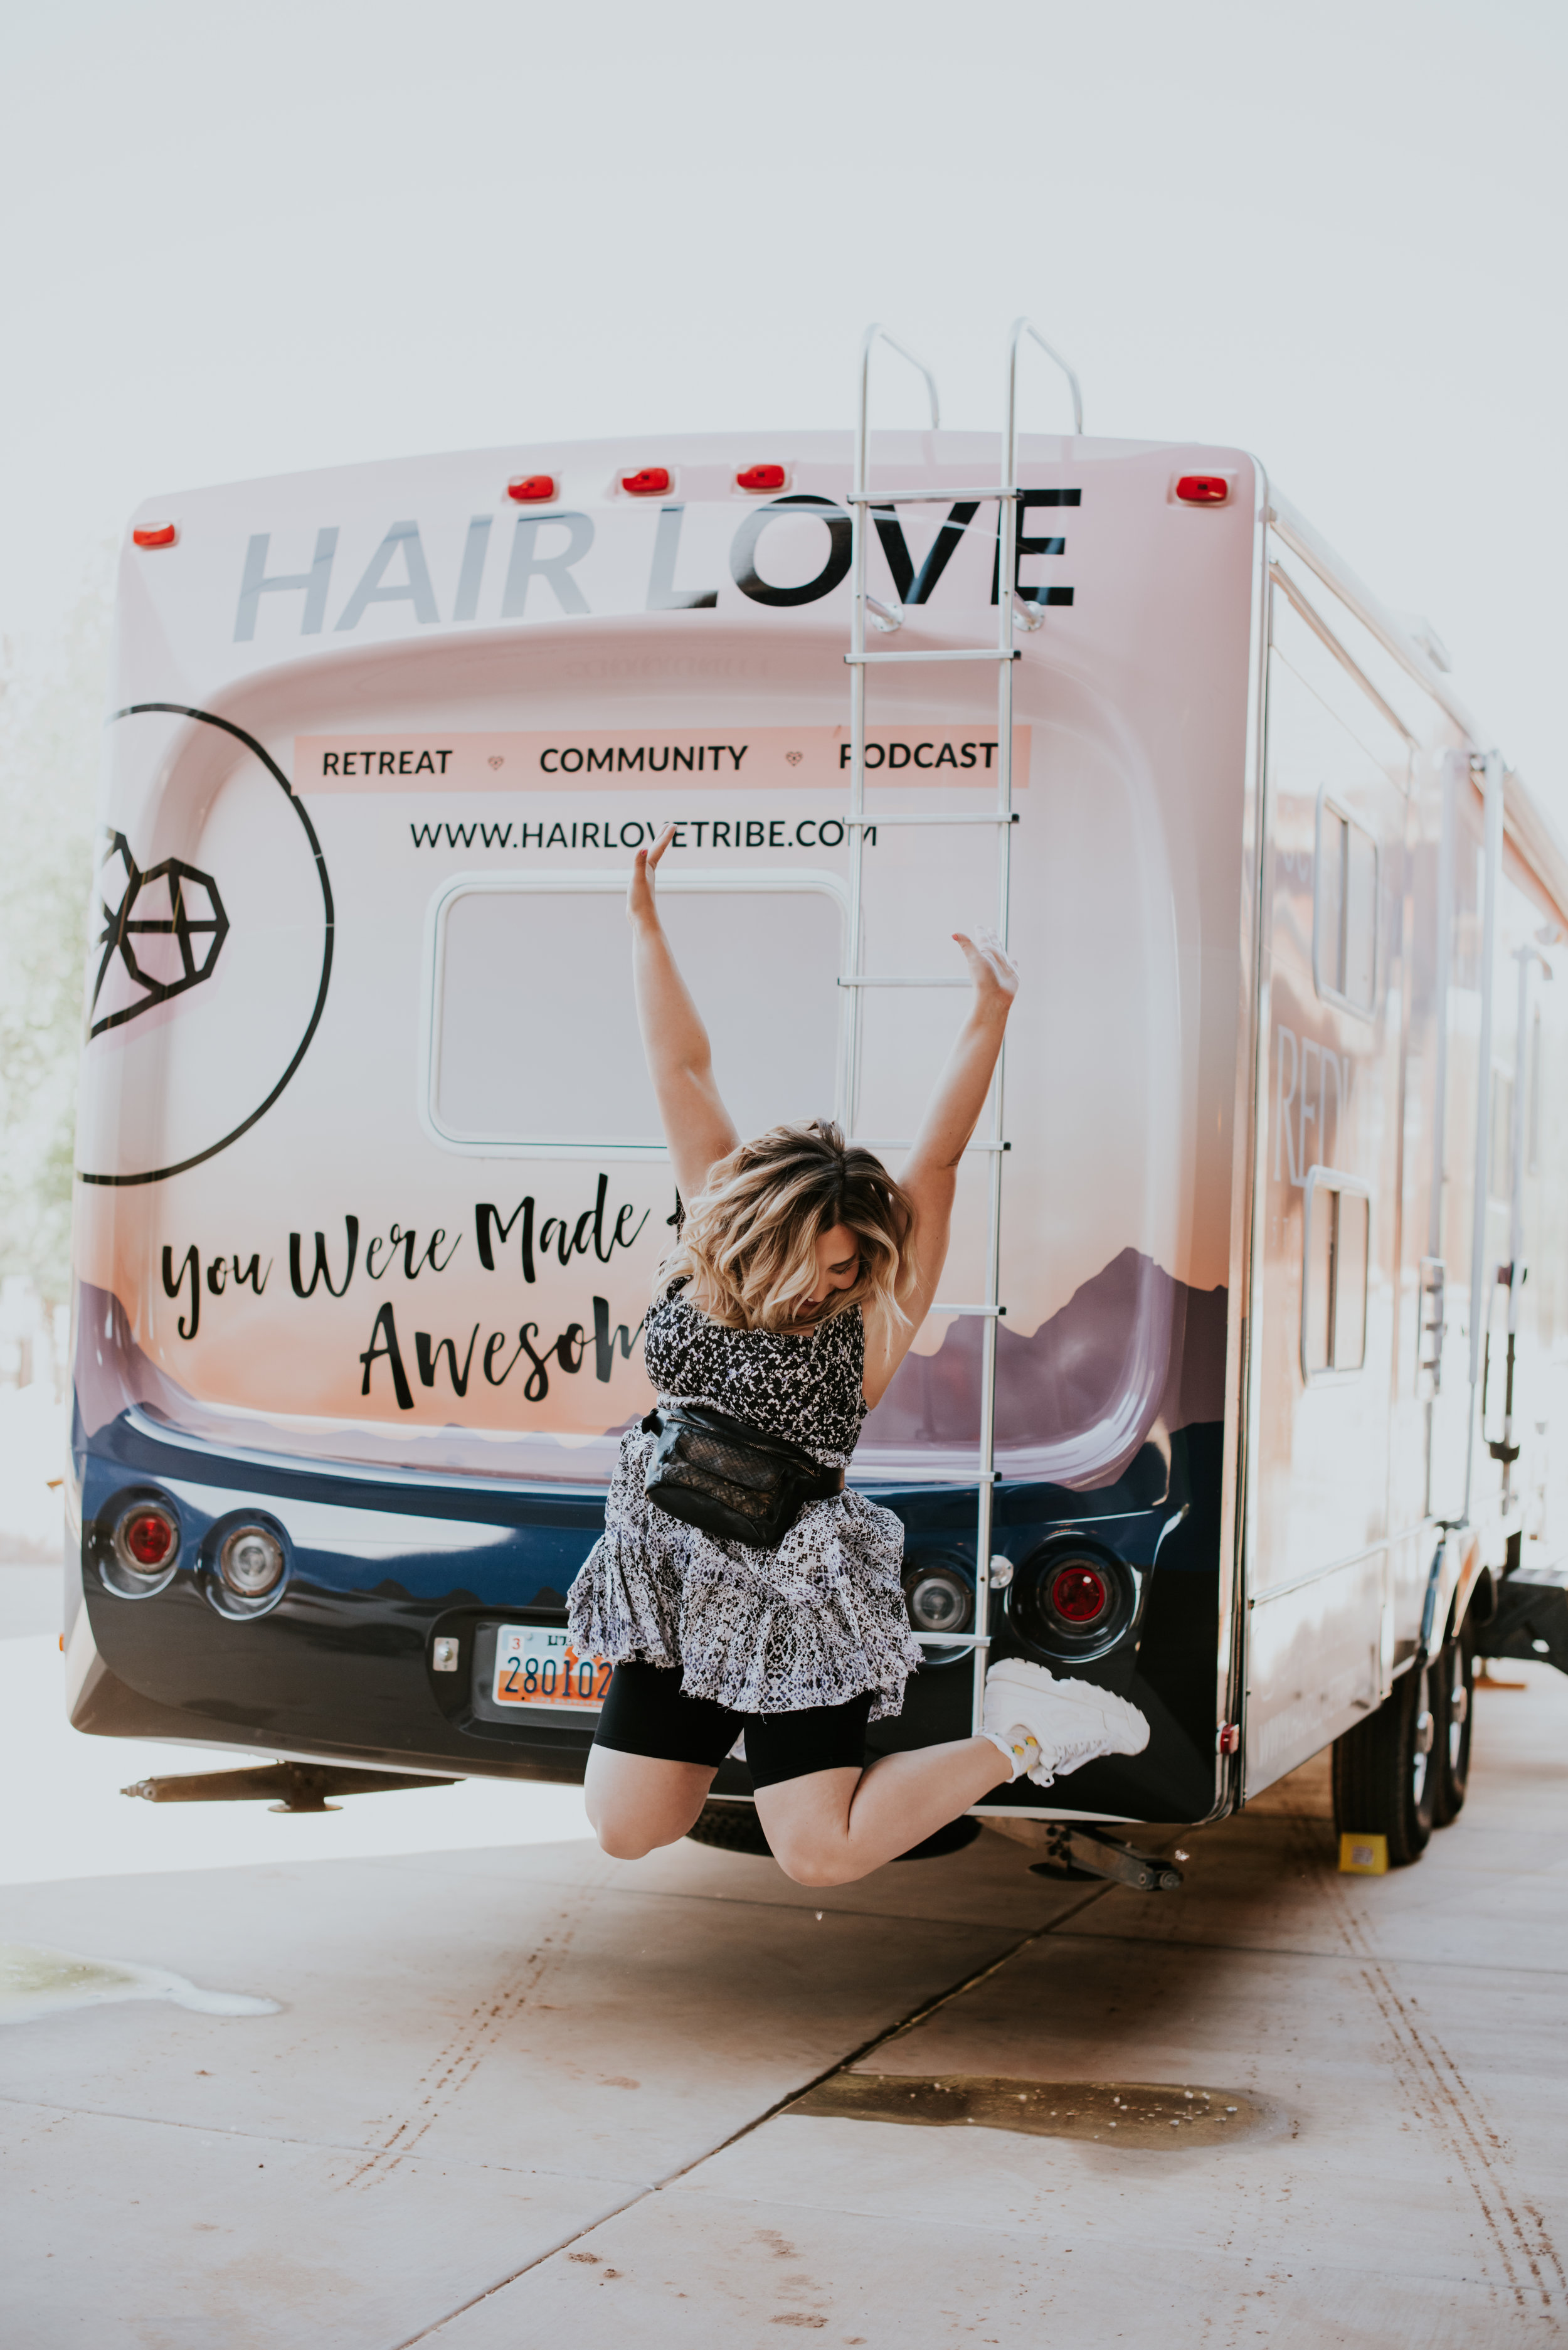 Are you a big fan of the Hair Love Radio Podcast?! Even if you aren't yet you will be after watching a live show. The big news is finally out! The #hairloverv (yes RV!!!! holy molly) is hitting the road this July! We will be hosting LIVE shows, meet ups, popups and more opportunities to be a part of this amazing tribe of stylist. A big thanks to Redken + Schedulicity for making this magical month of gatherings, events + meetups possible!We want you there! Snag your ticket, seats are limited and will fly!! -